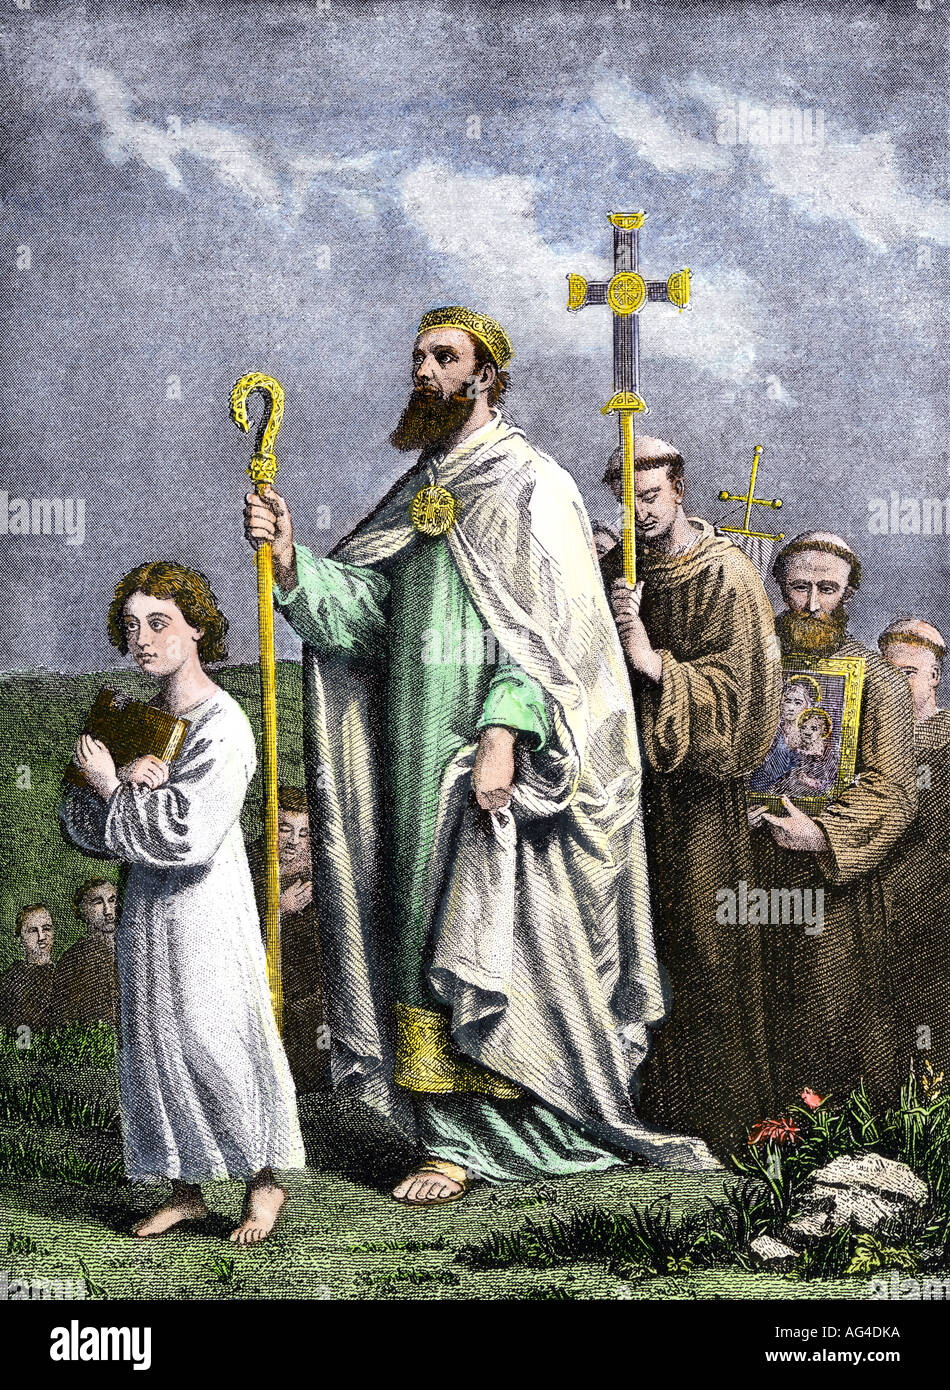 Saint Patrick journeying to Tara to convert the Irish to Christianity in the 5th century AD. Hand-colored halftone Stock Photo